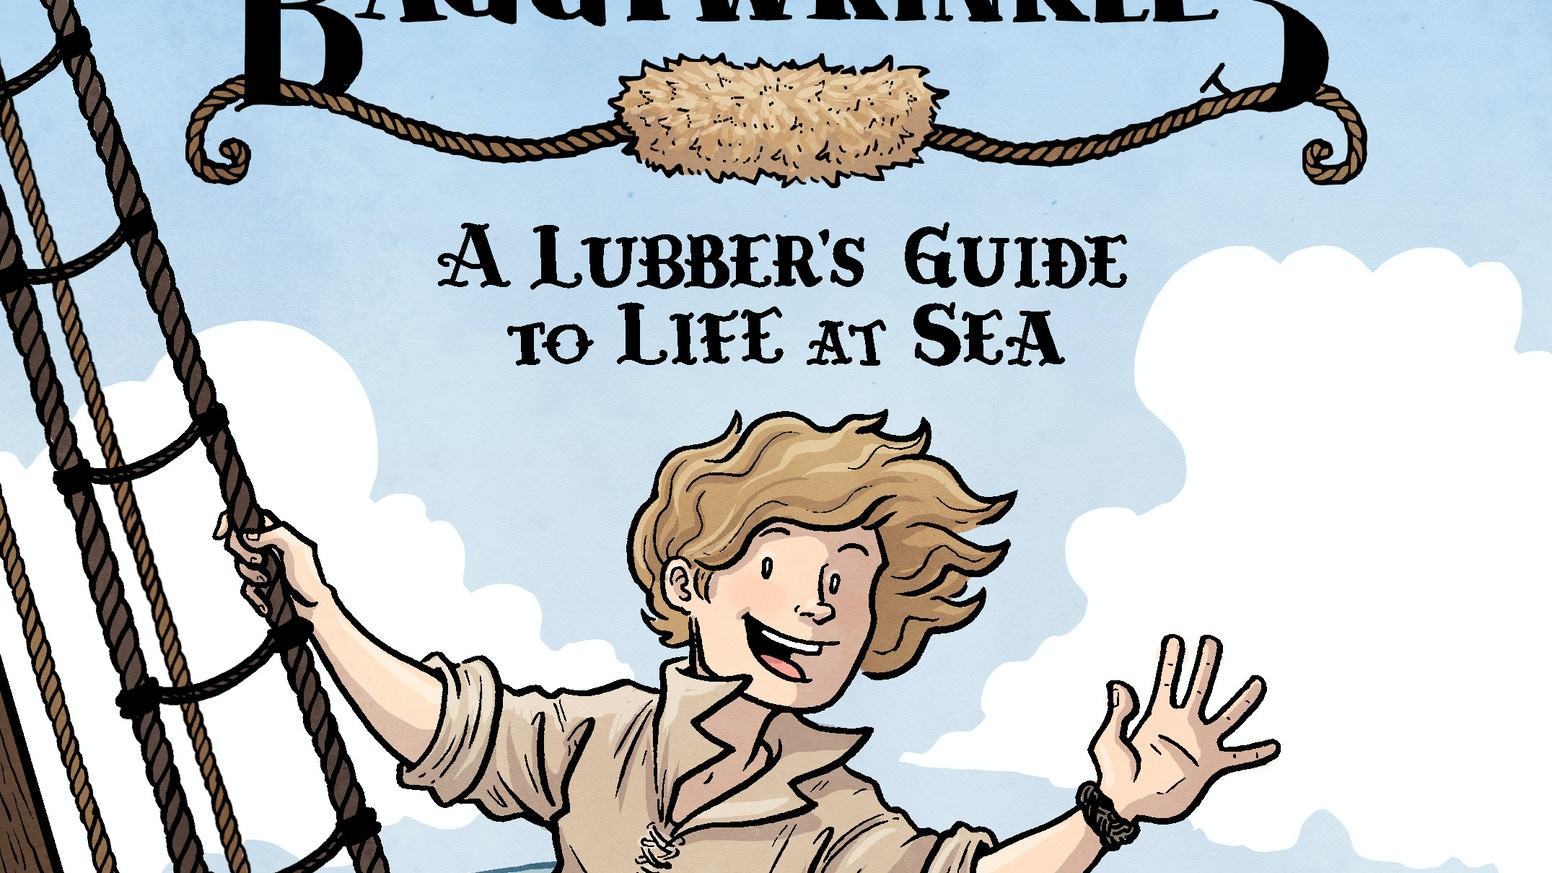 A fetching, 100-page, full-color collection of the educational-autobiographical-nautical comic you never knew you needed.